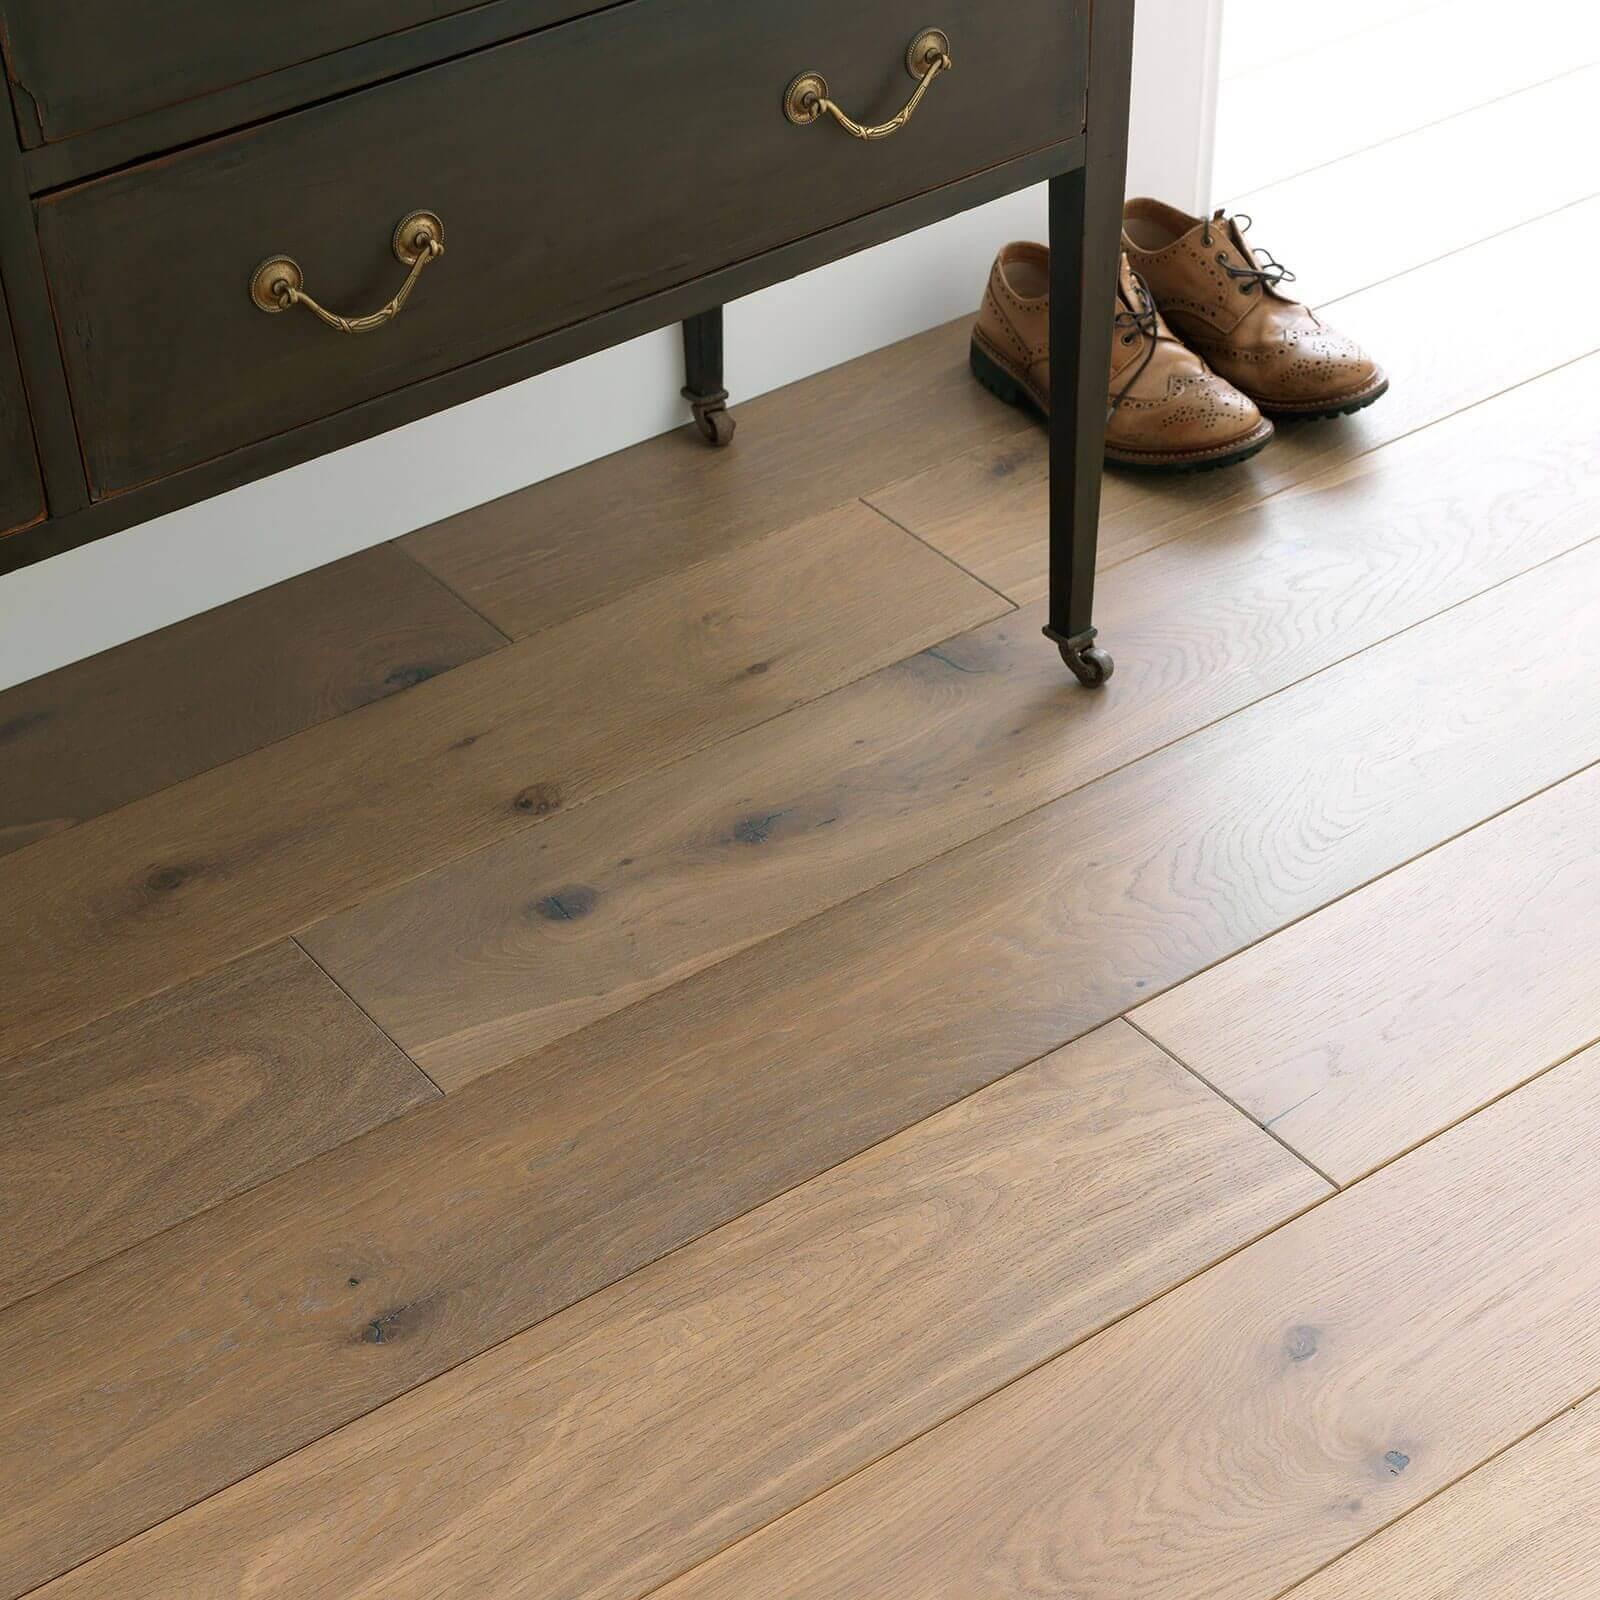 Woodpecker Chepstow Planed Washed Oak Hardwax Oiled Engineered Wood Flooring 189mm 65-RWA-001